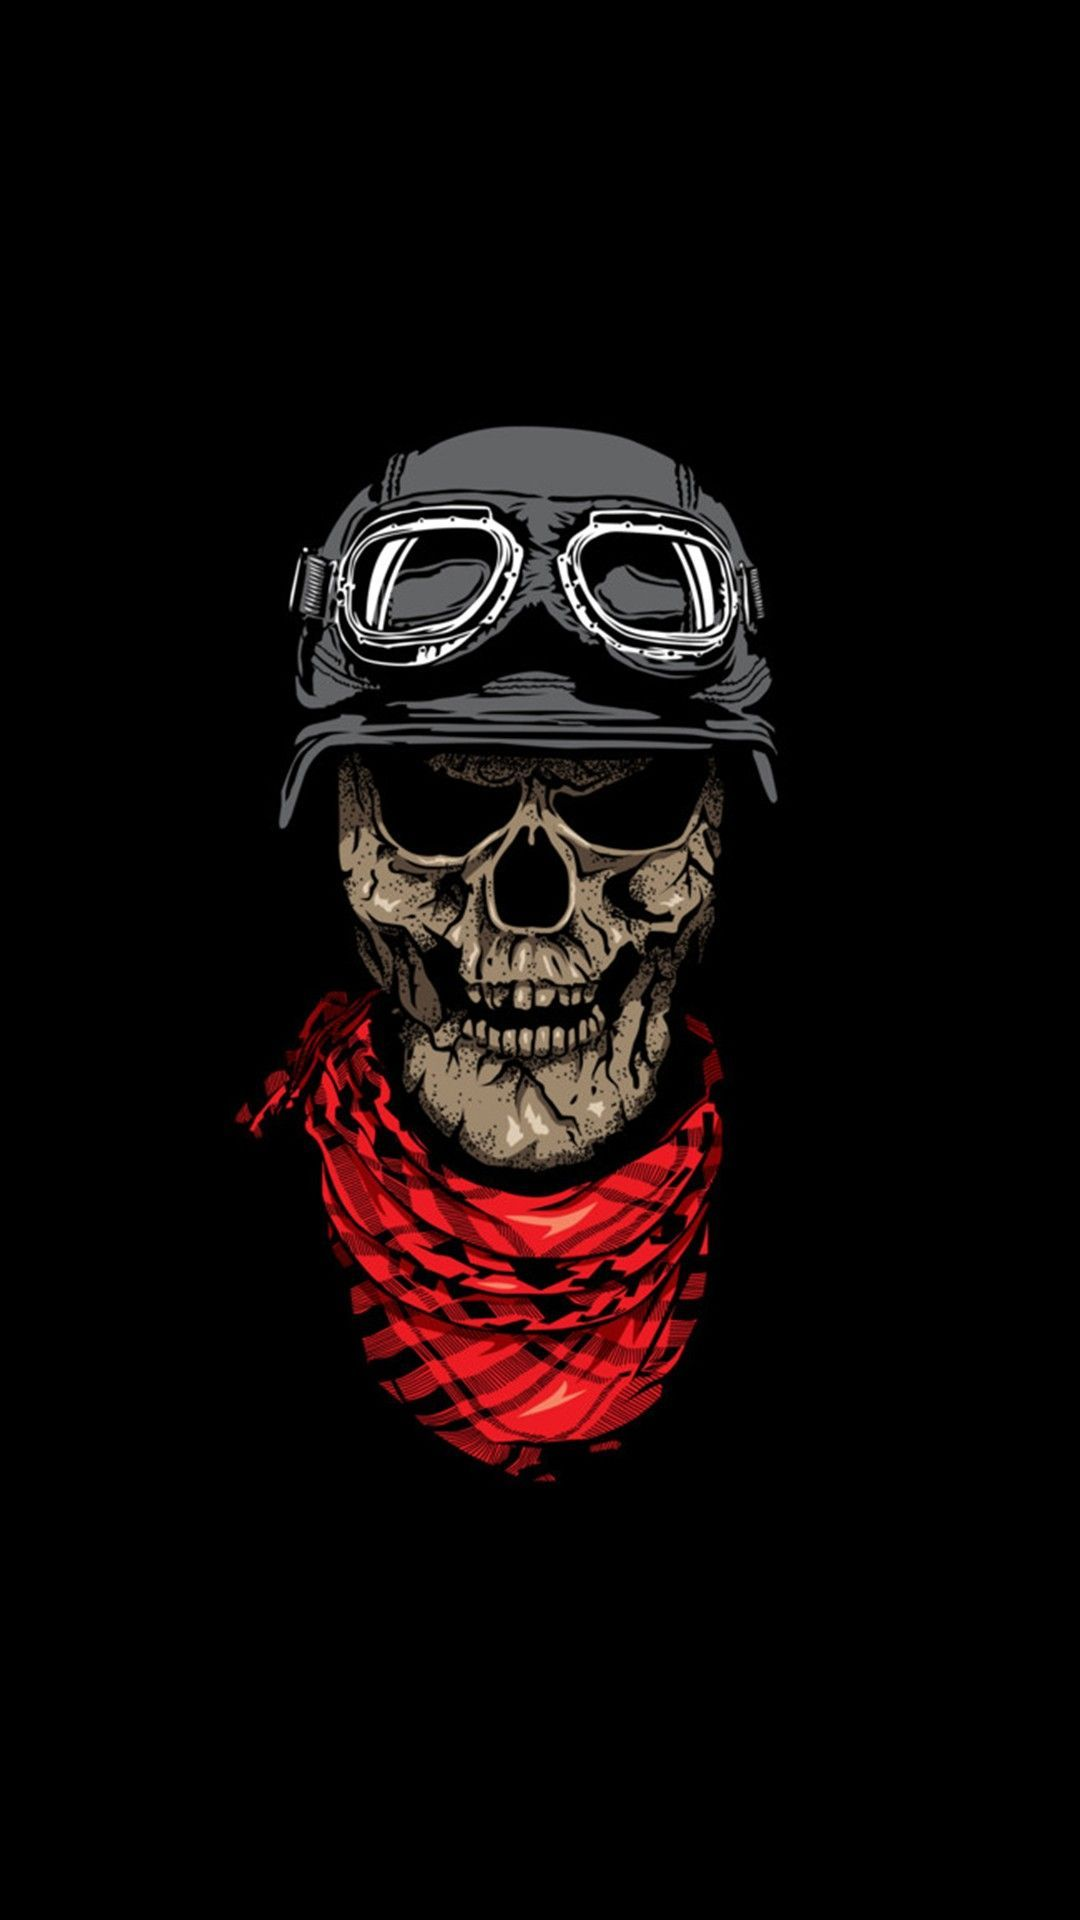 Cool Iphone Skull Wallpaper Kolpaper Awesome Free Hd Wallpapers